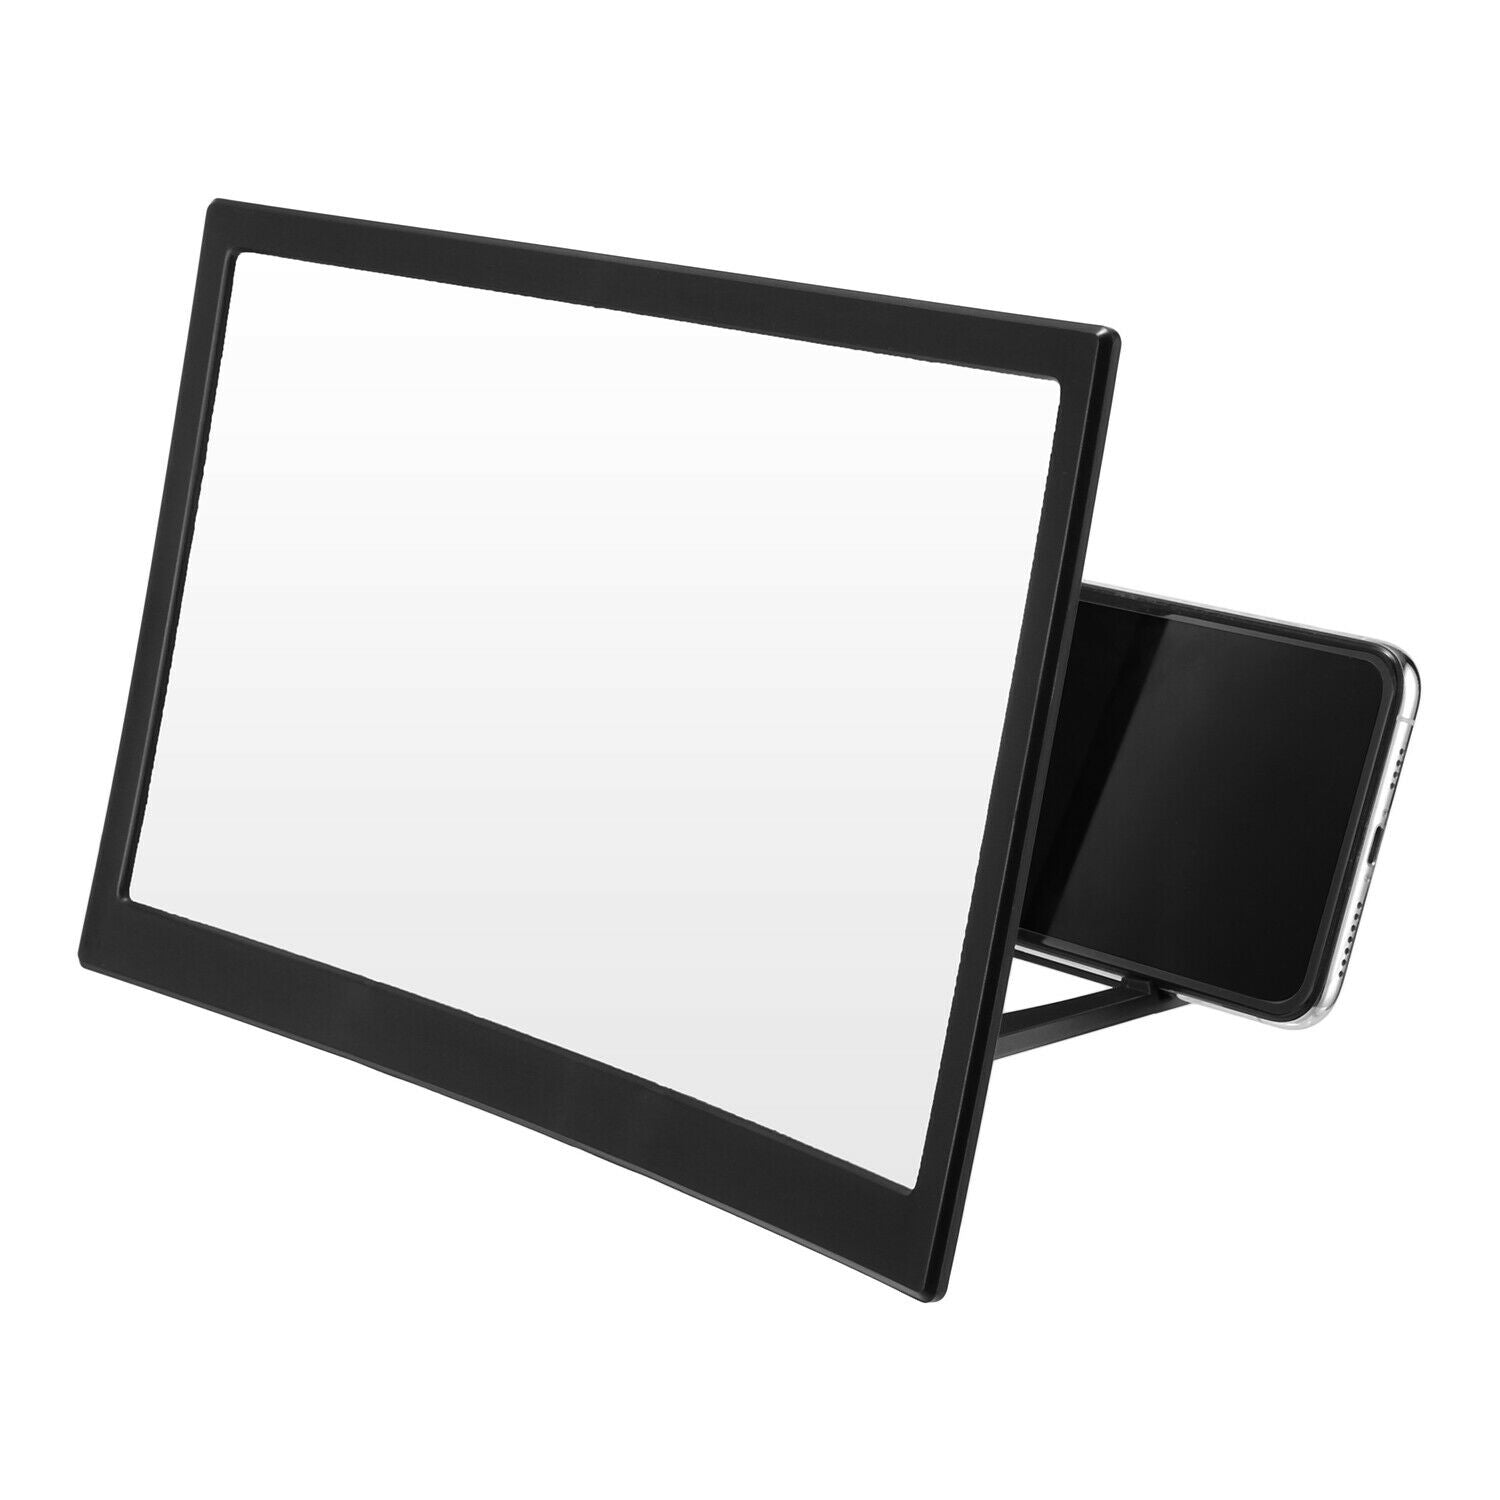 Premium Mobile Phone Video Curved Screen Amplifier 3D HD Magnifier - Morealis